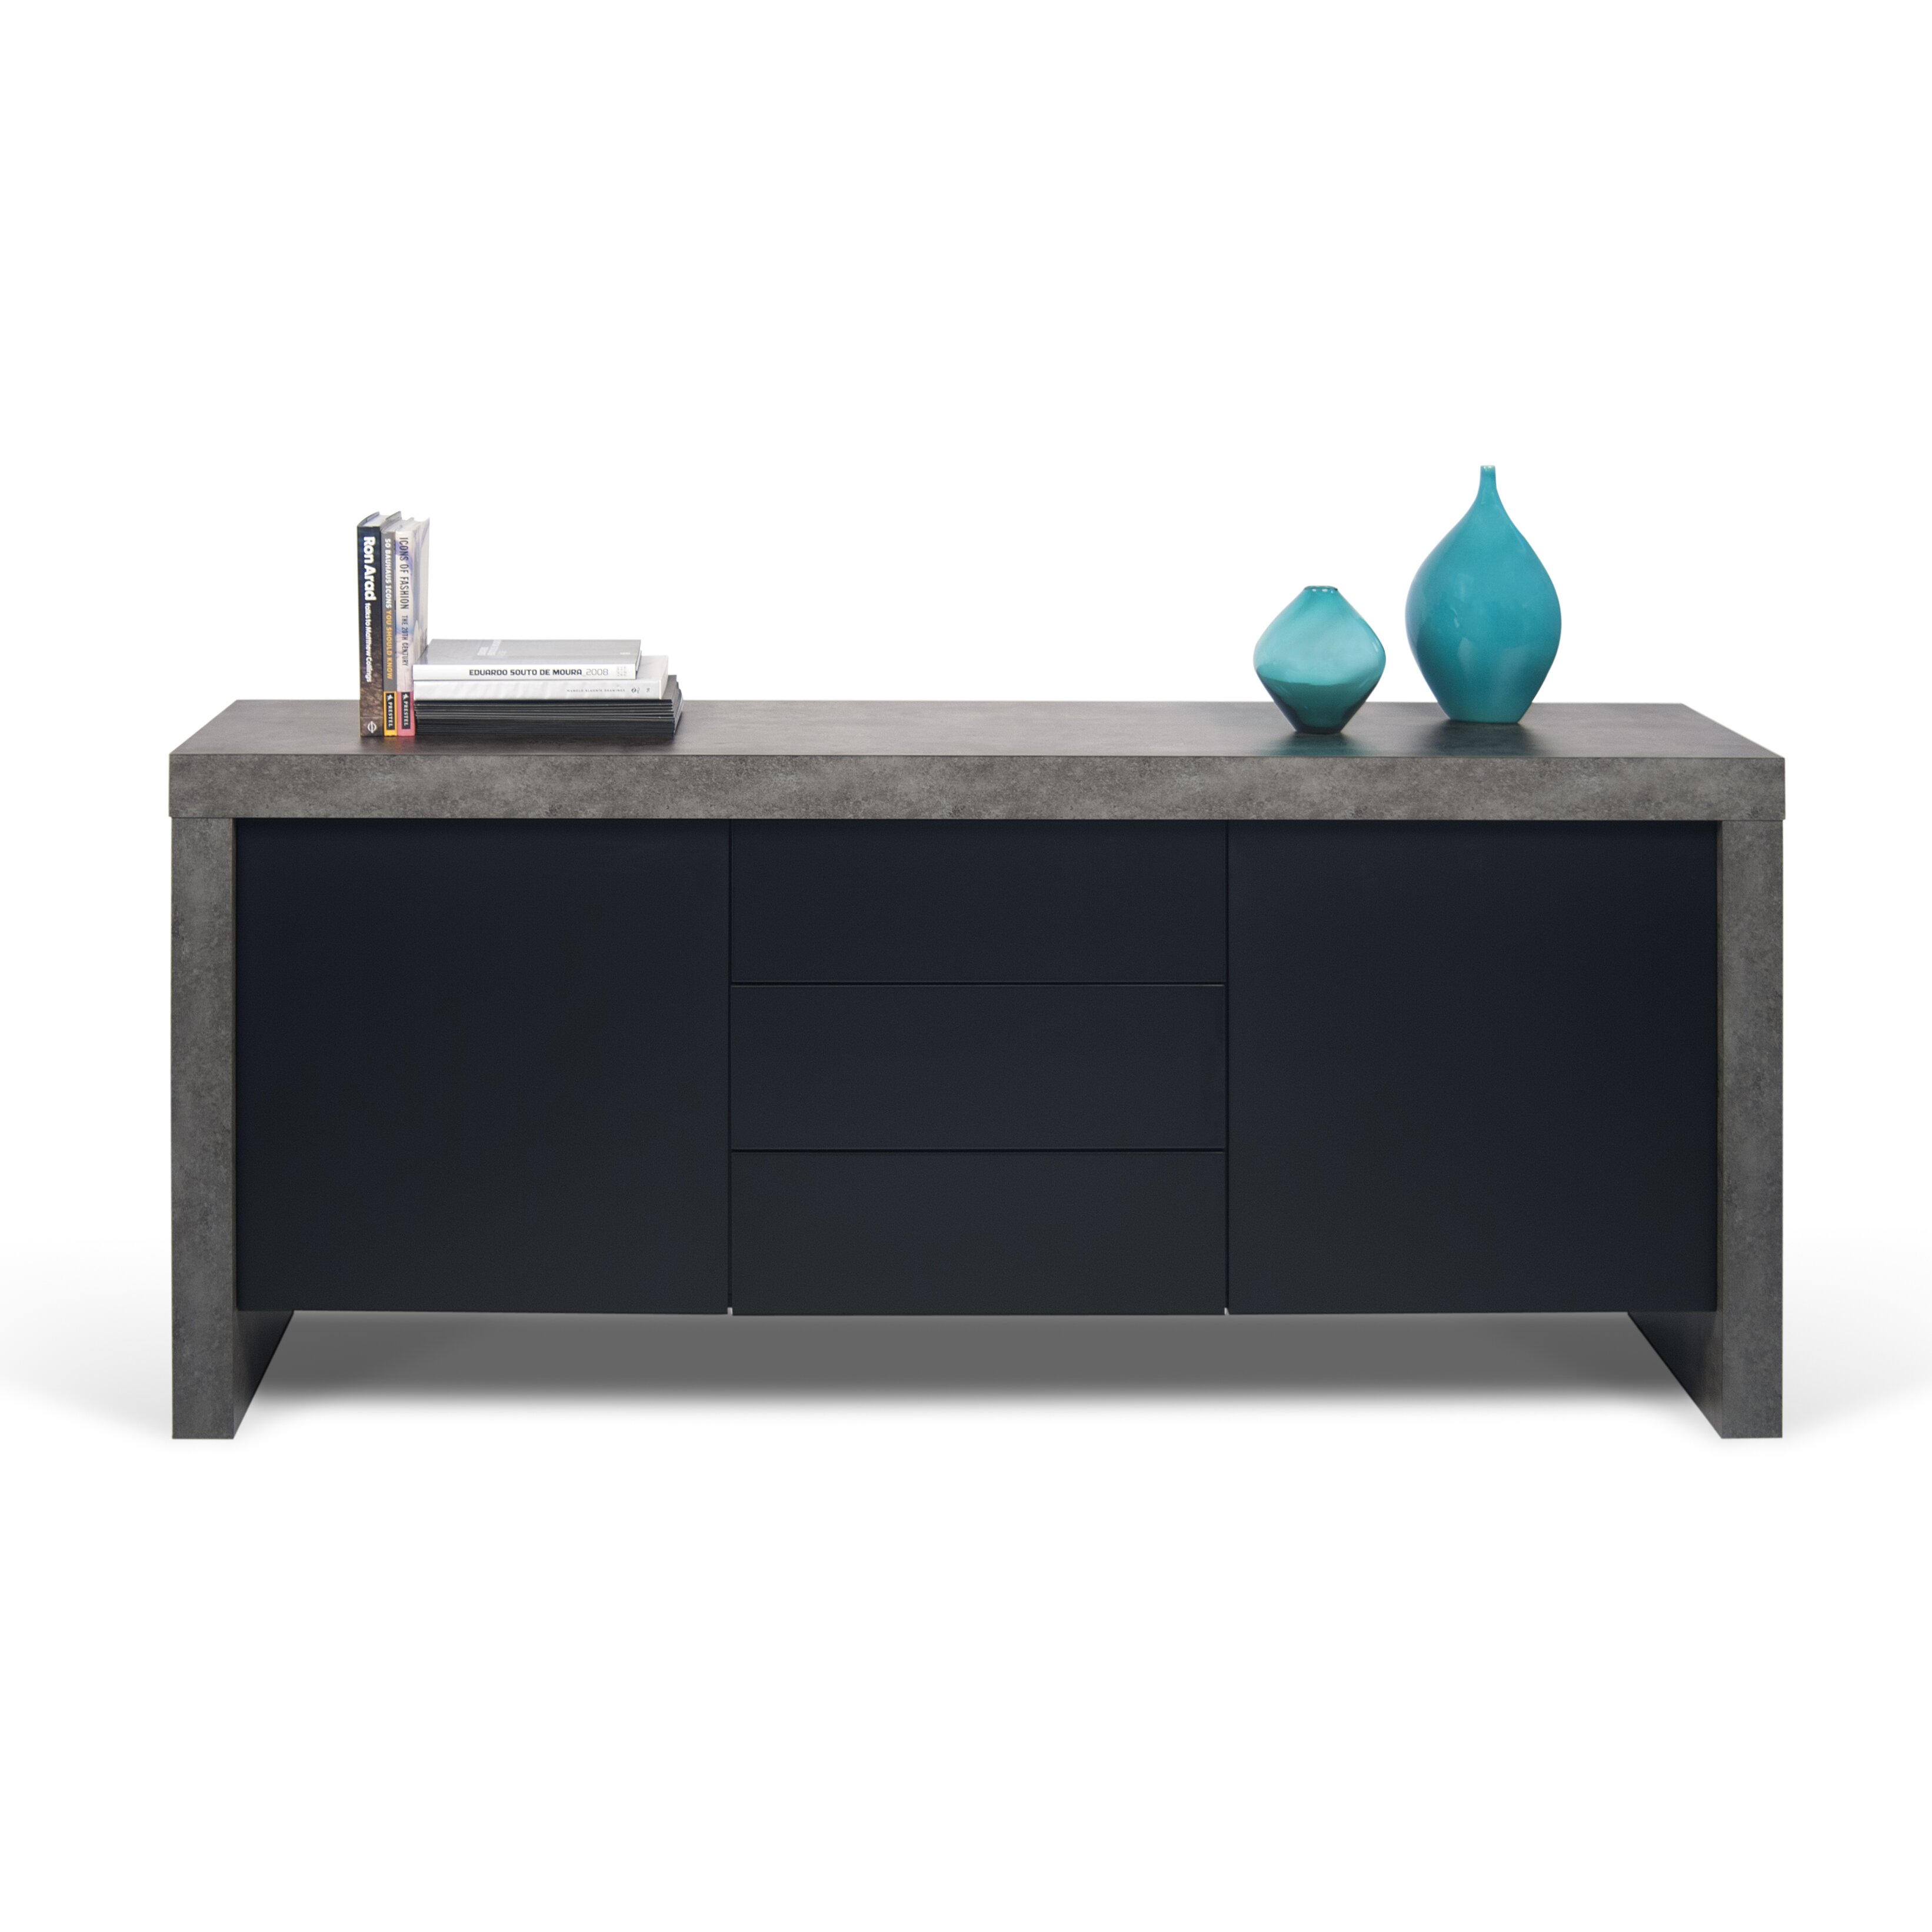 tema kobe 2 door sideboard reviews wayfair